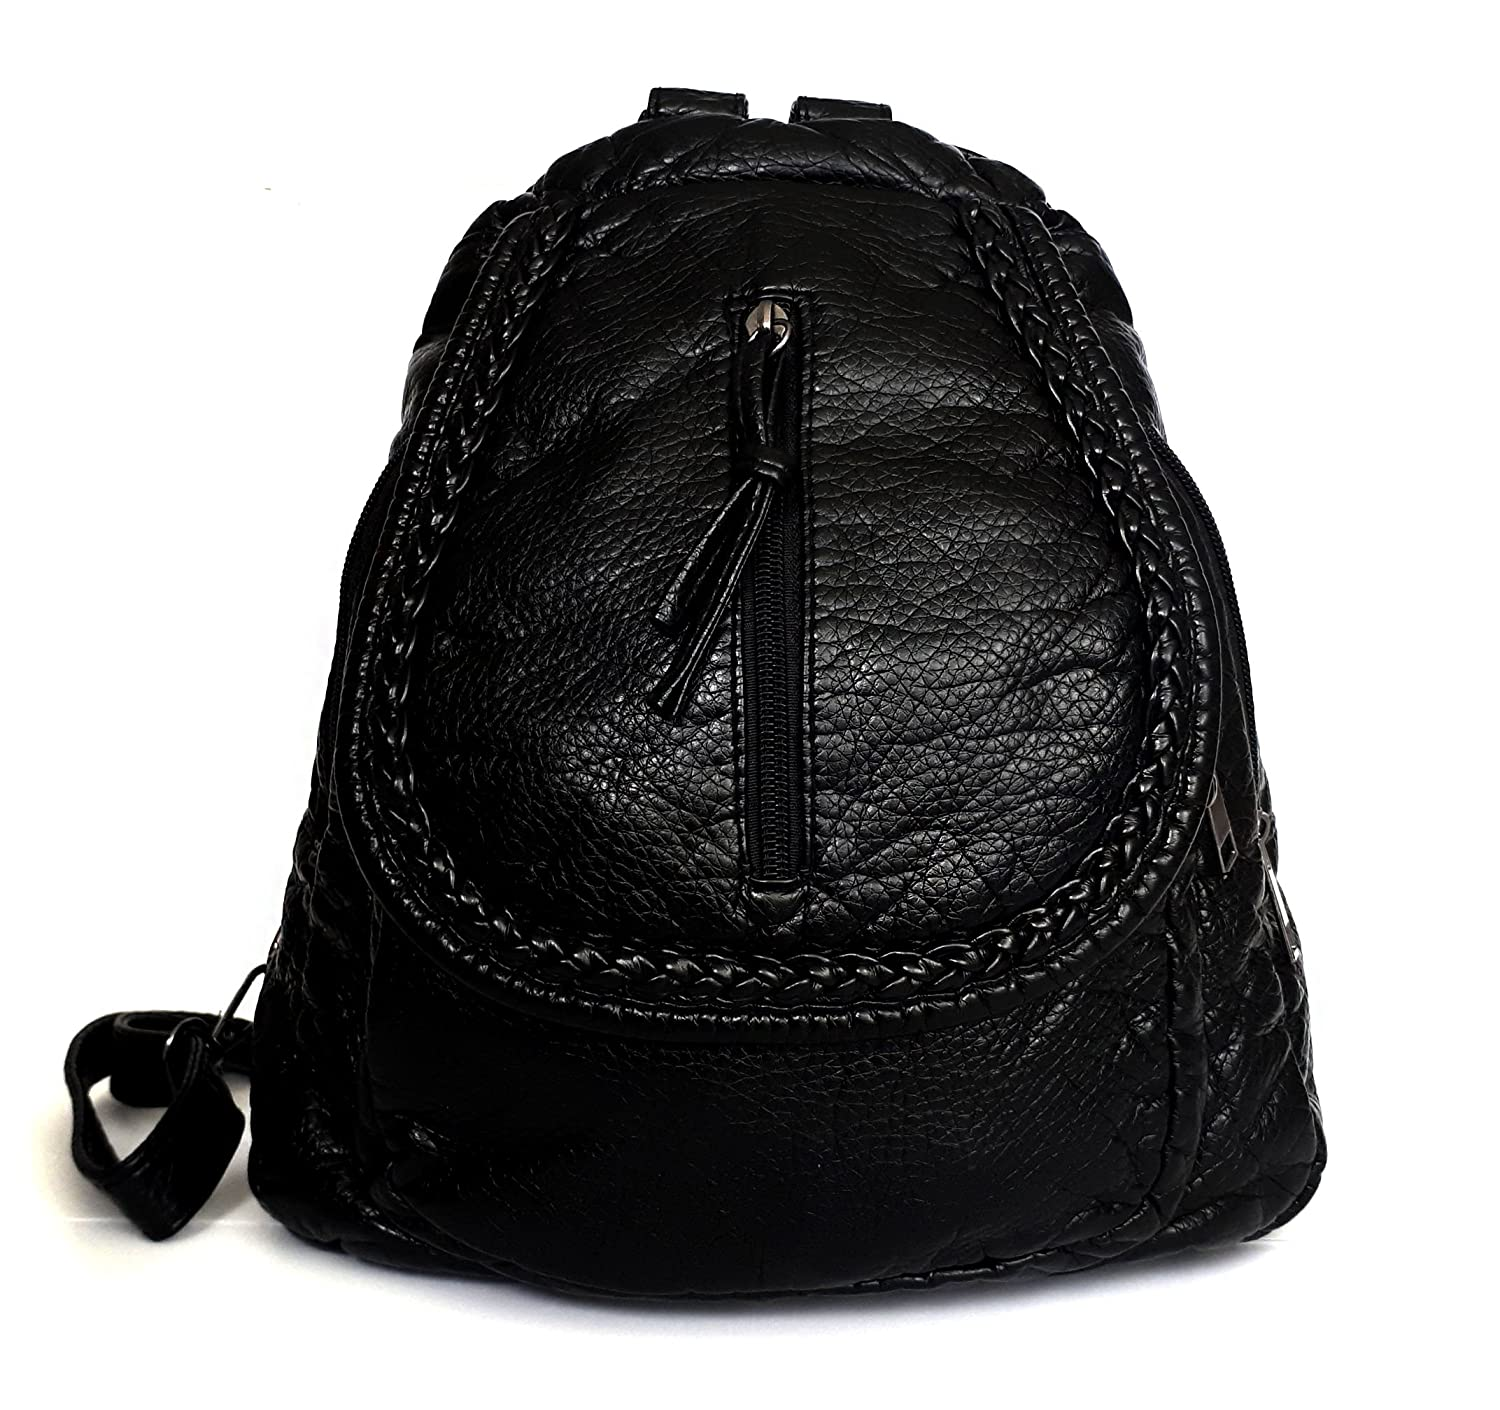 Backpack for Women Black Ladies Purse Fashion Urban Casual Stylish Cute Modern Chic for Everyday C14